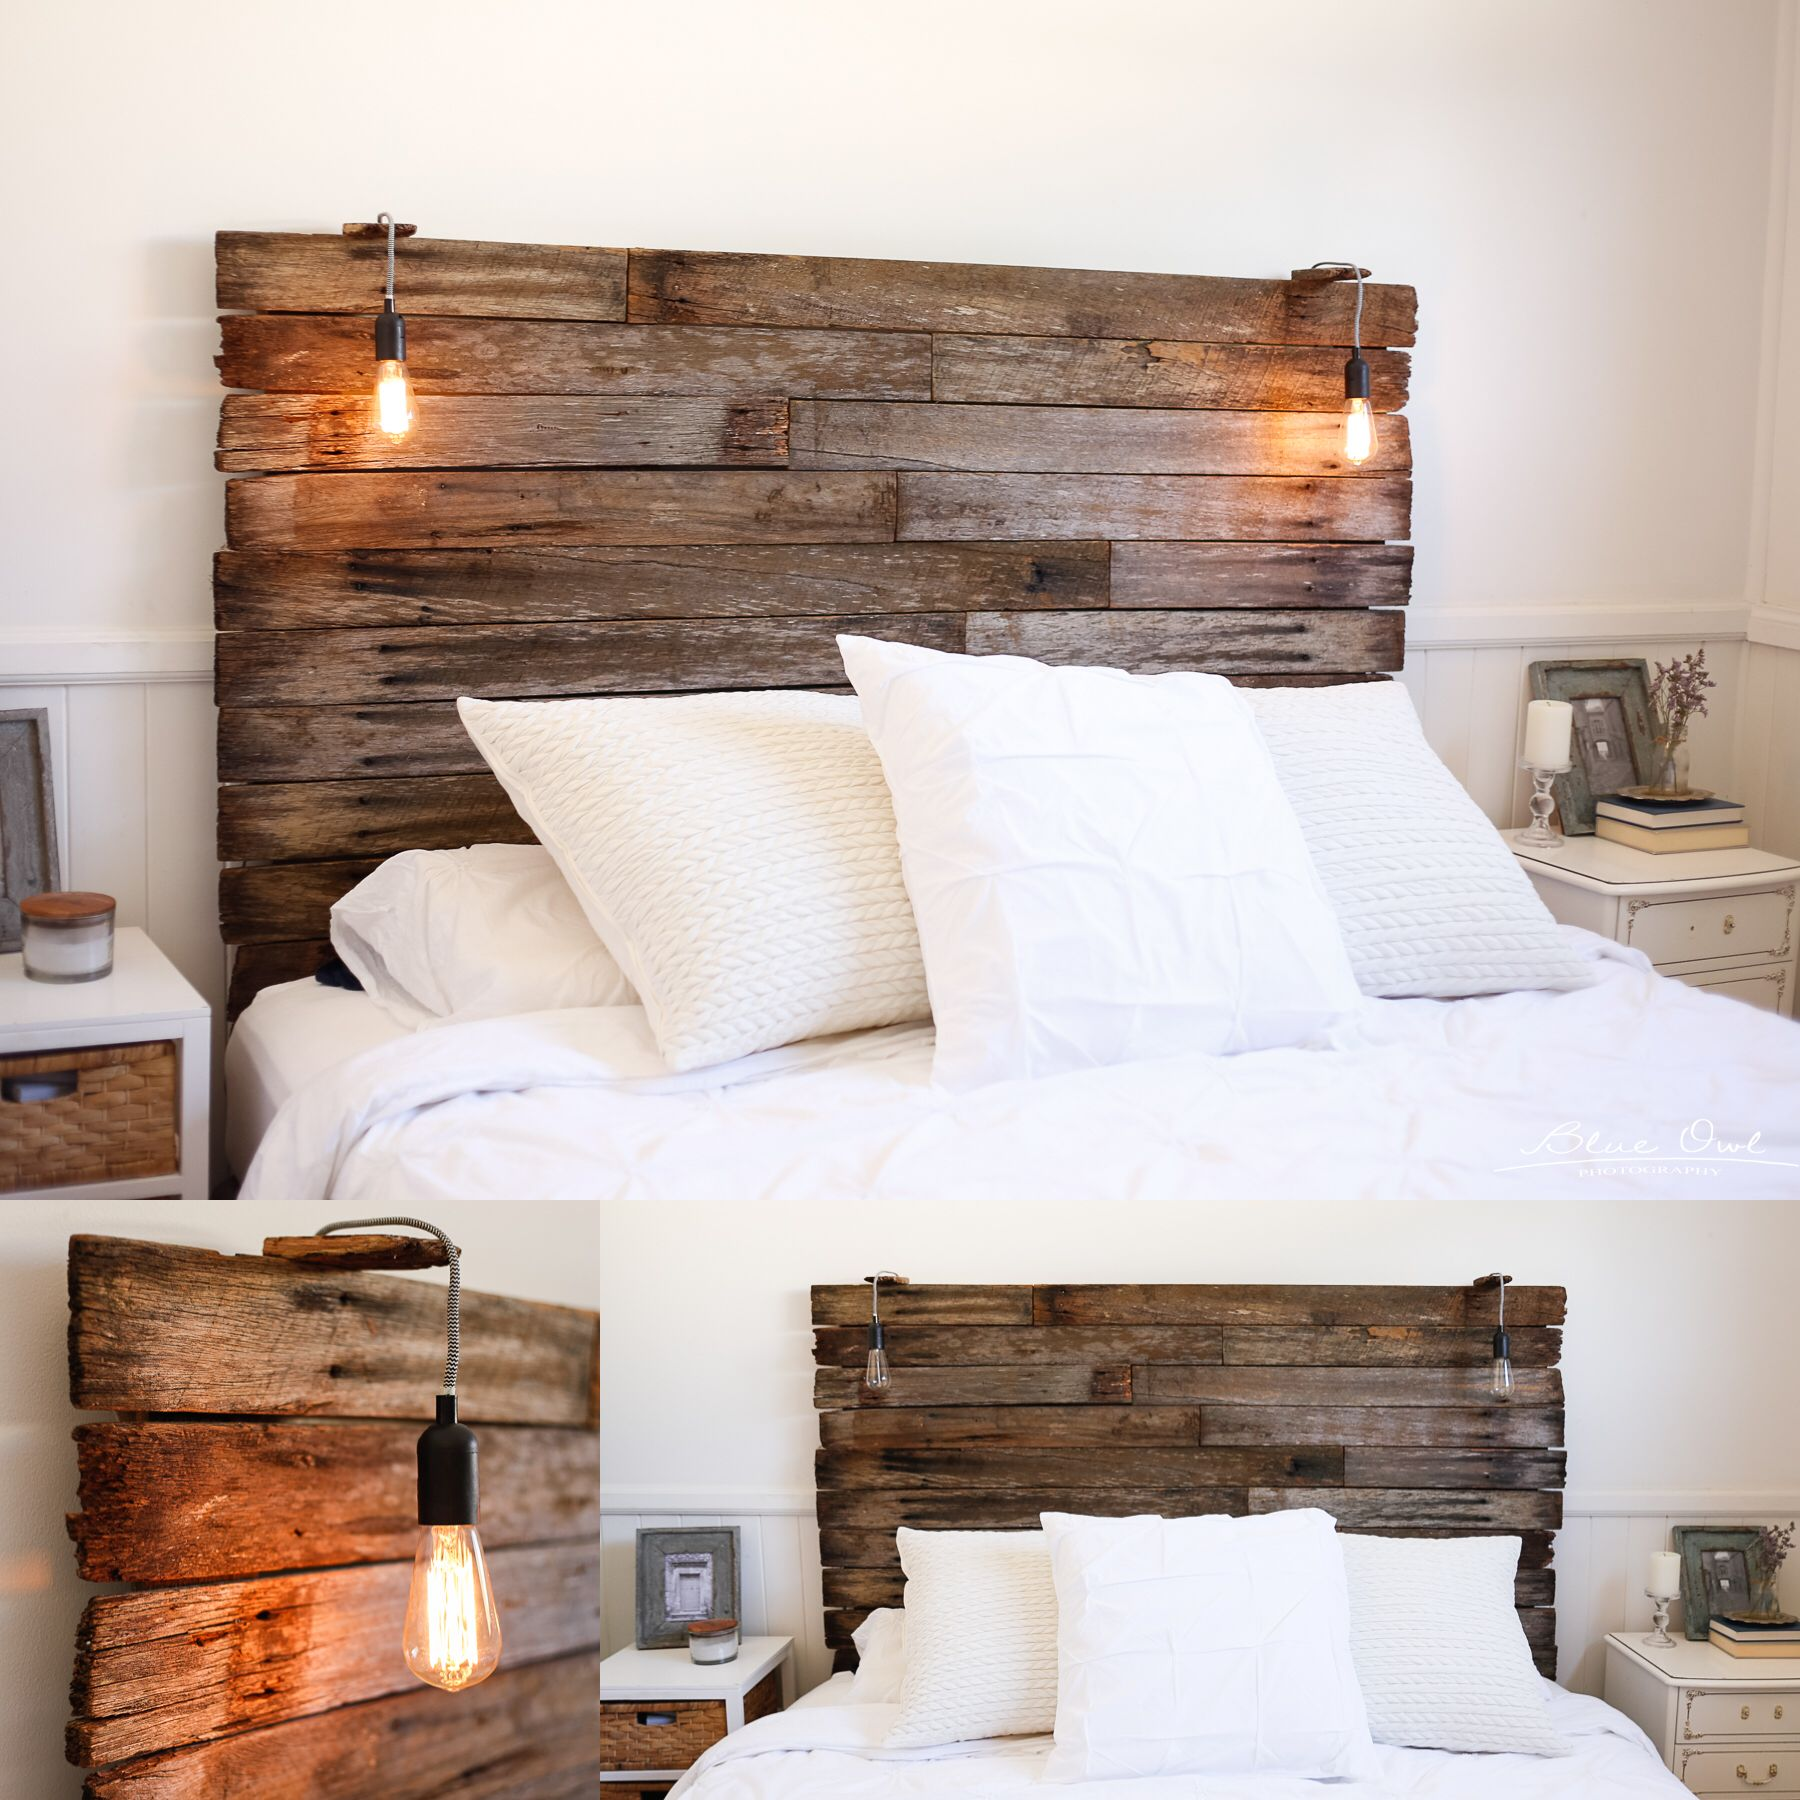 my recycled rustic fence pailing timber bedhead lamp kmart hack for